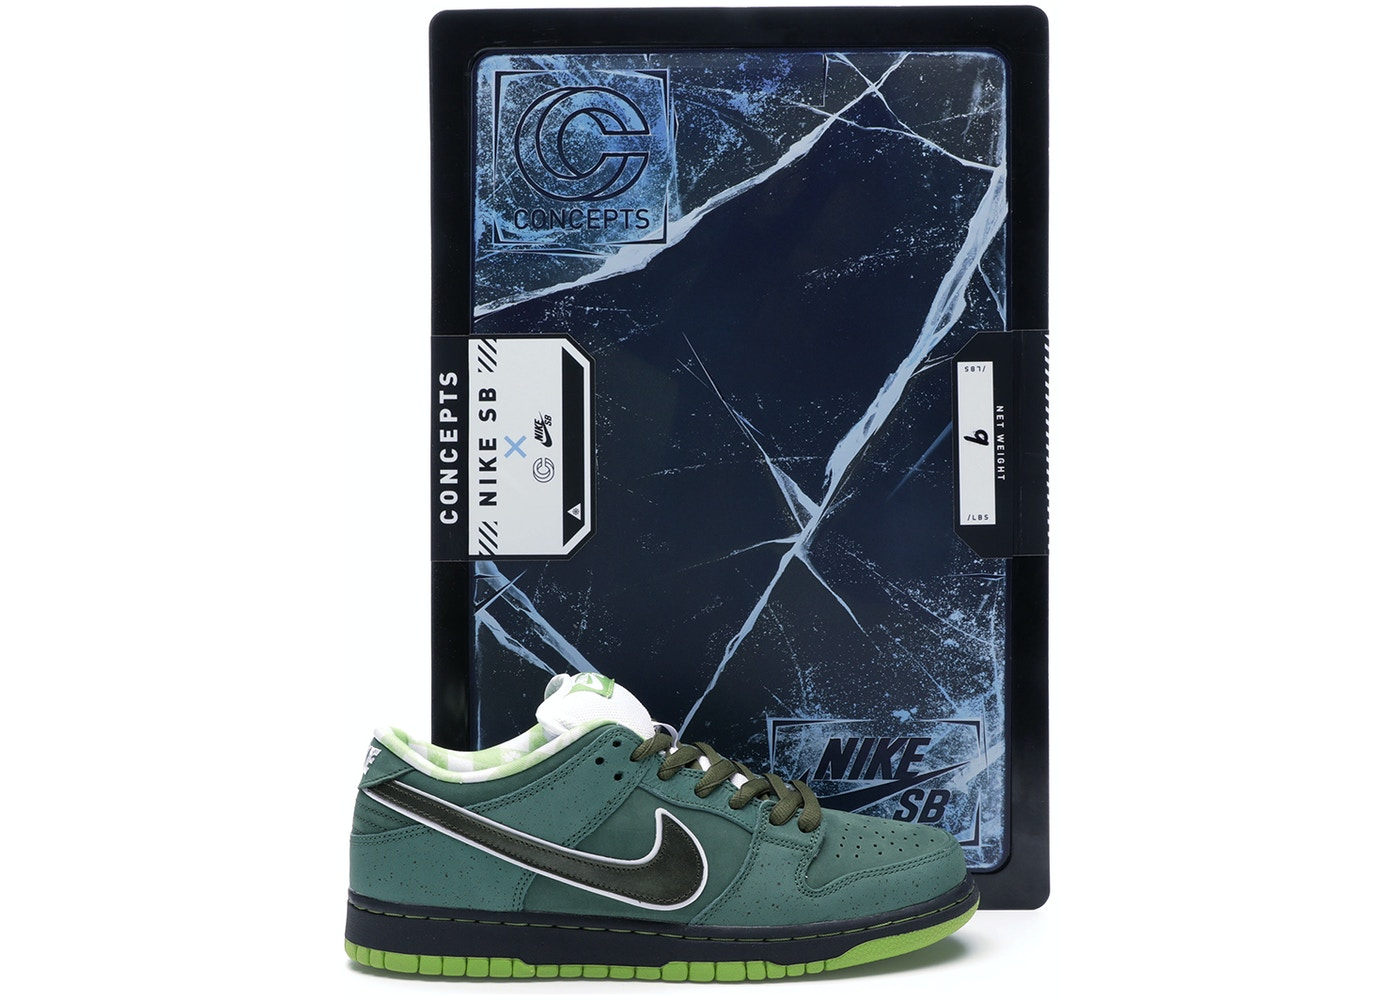 d5b70e65585785 Nike SB Dunk Low Concepts Green Lobster (Special Box) - BV1310-337